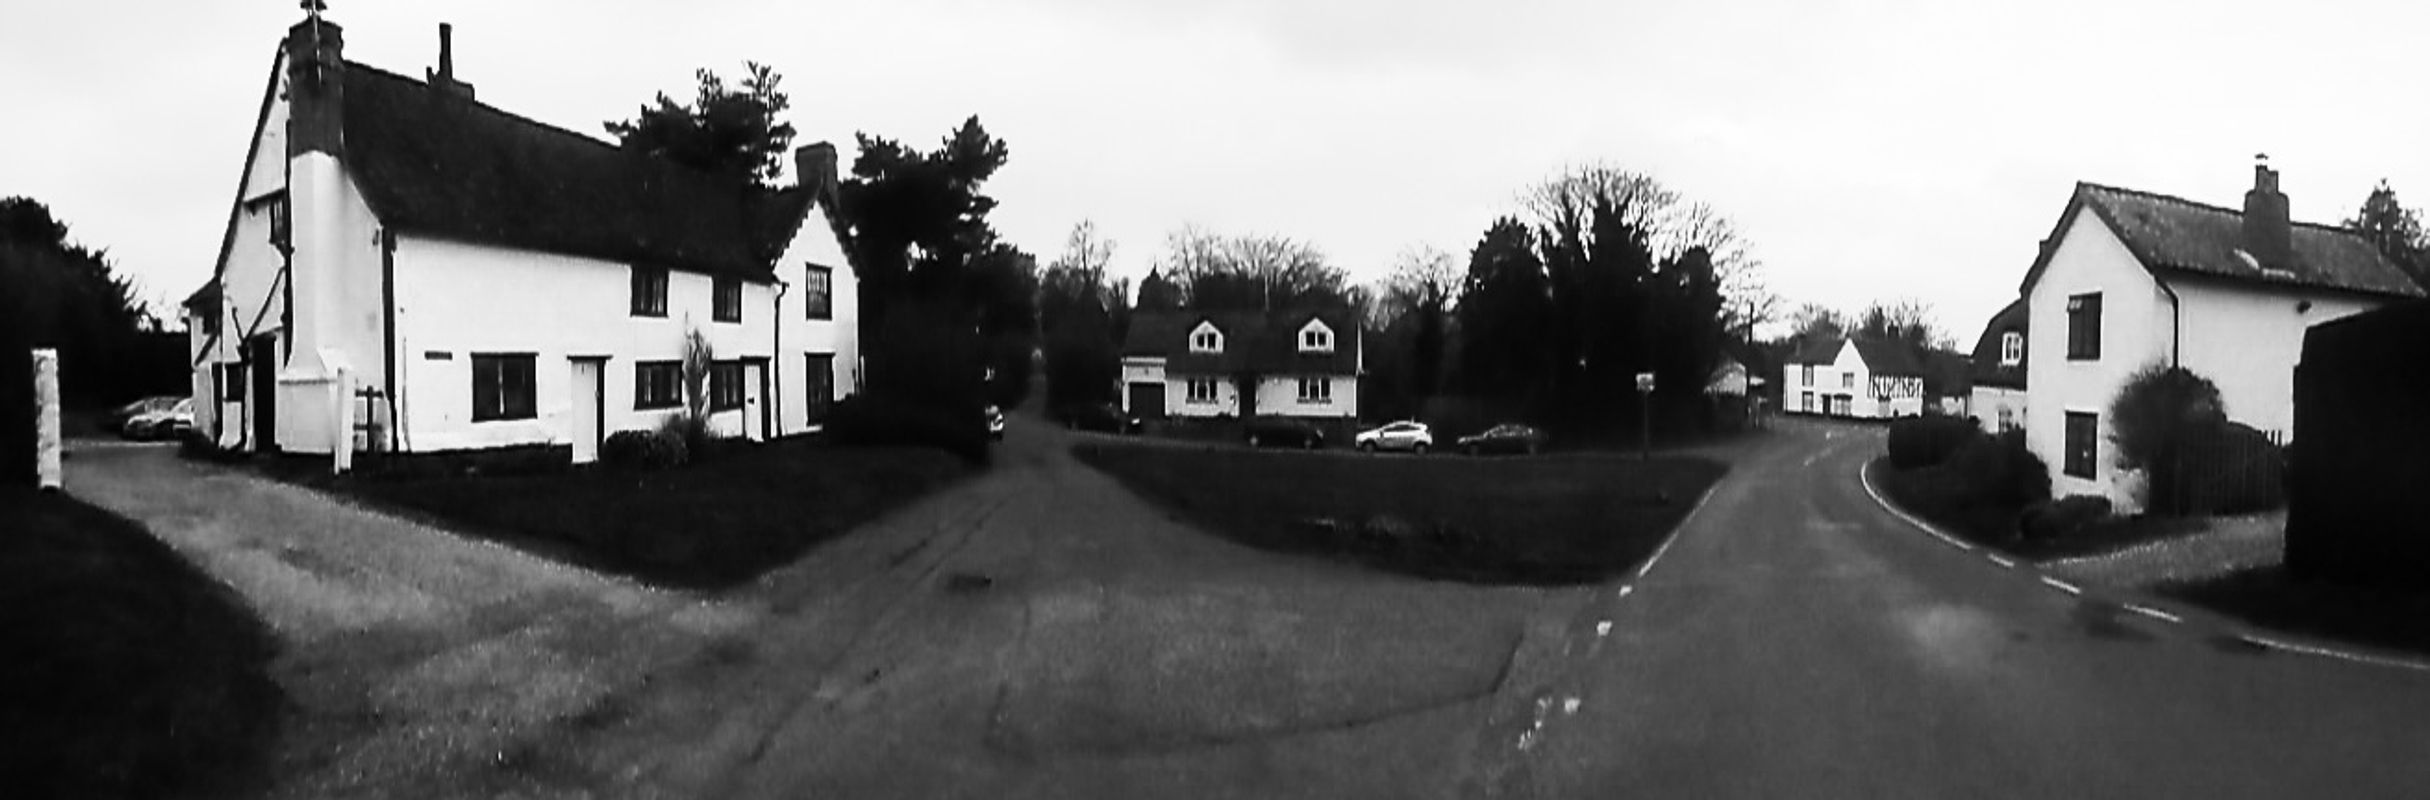 BW Panoramic View of Hadstock in England